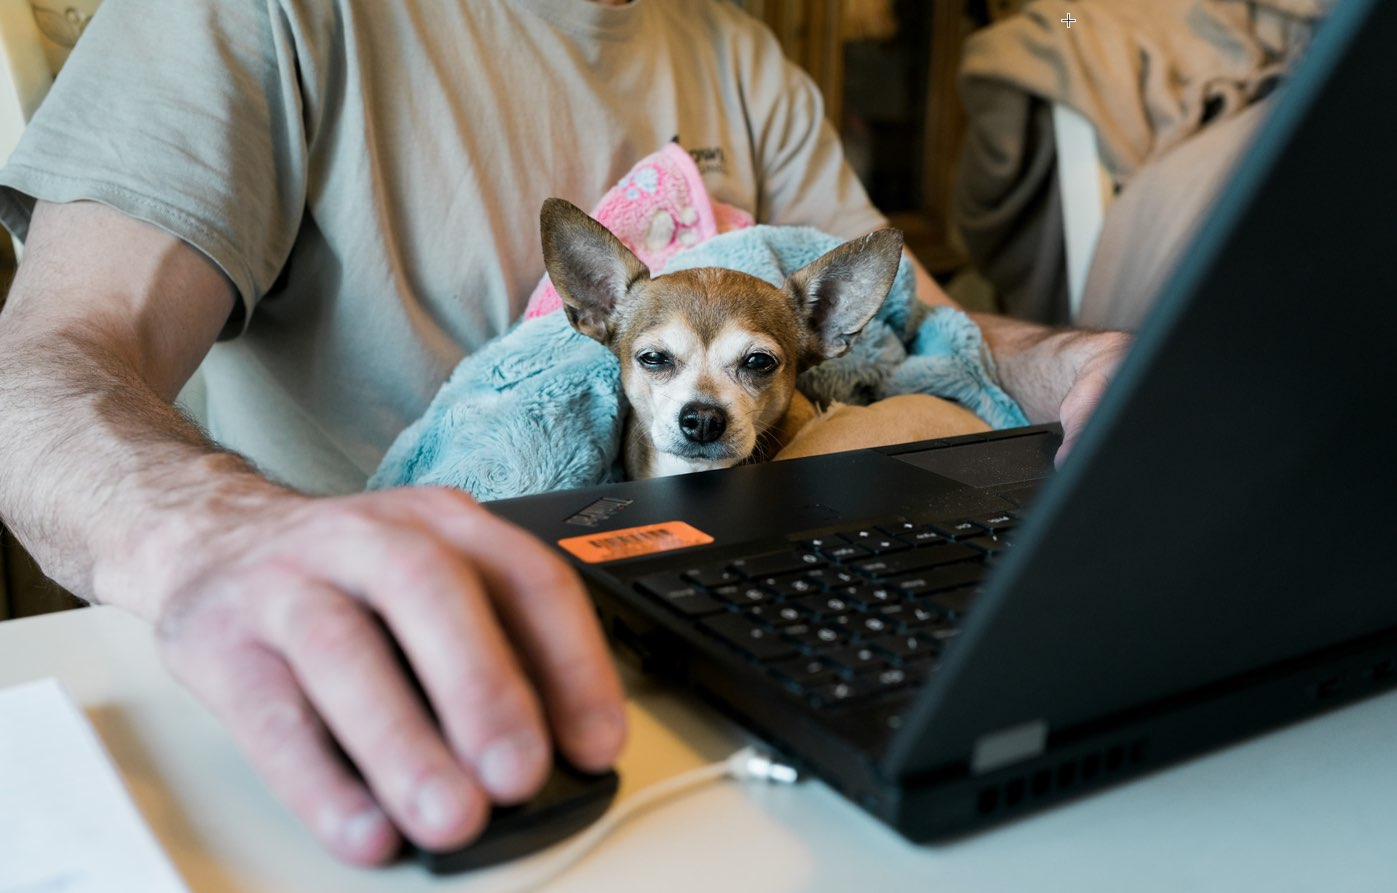 Top Things to Consider Before Becoming a Pet-Friendly Workplace